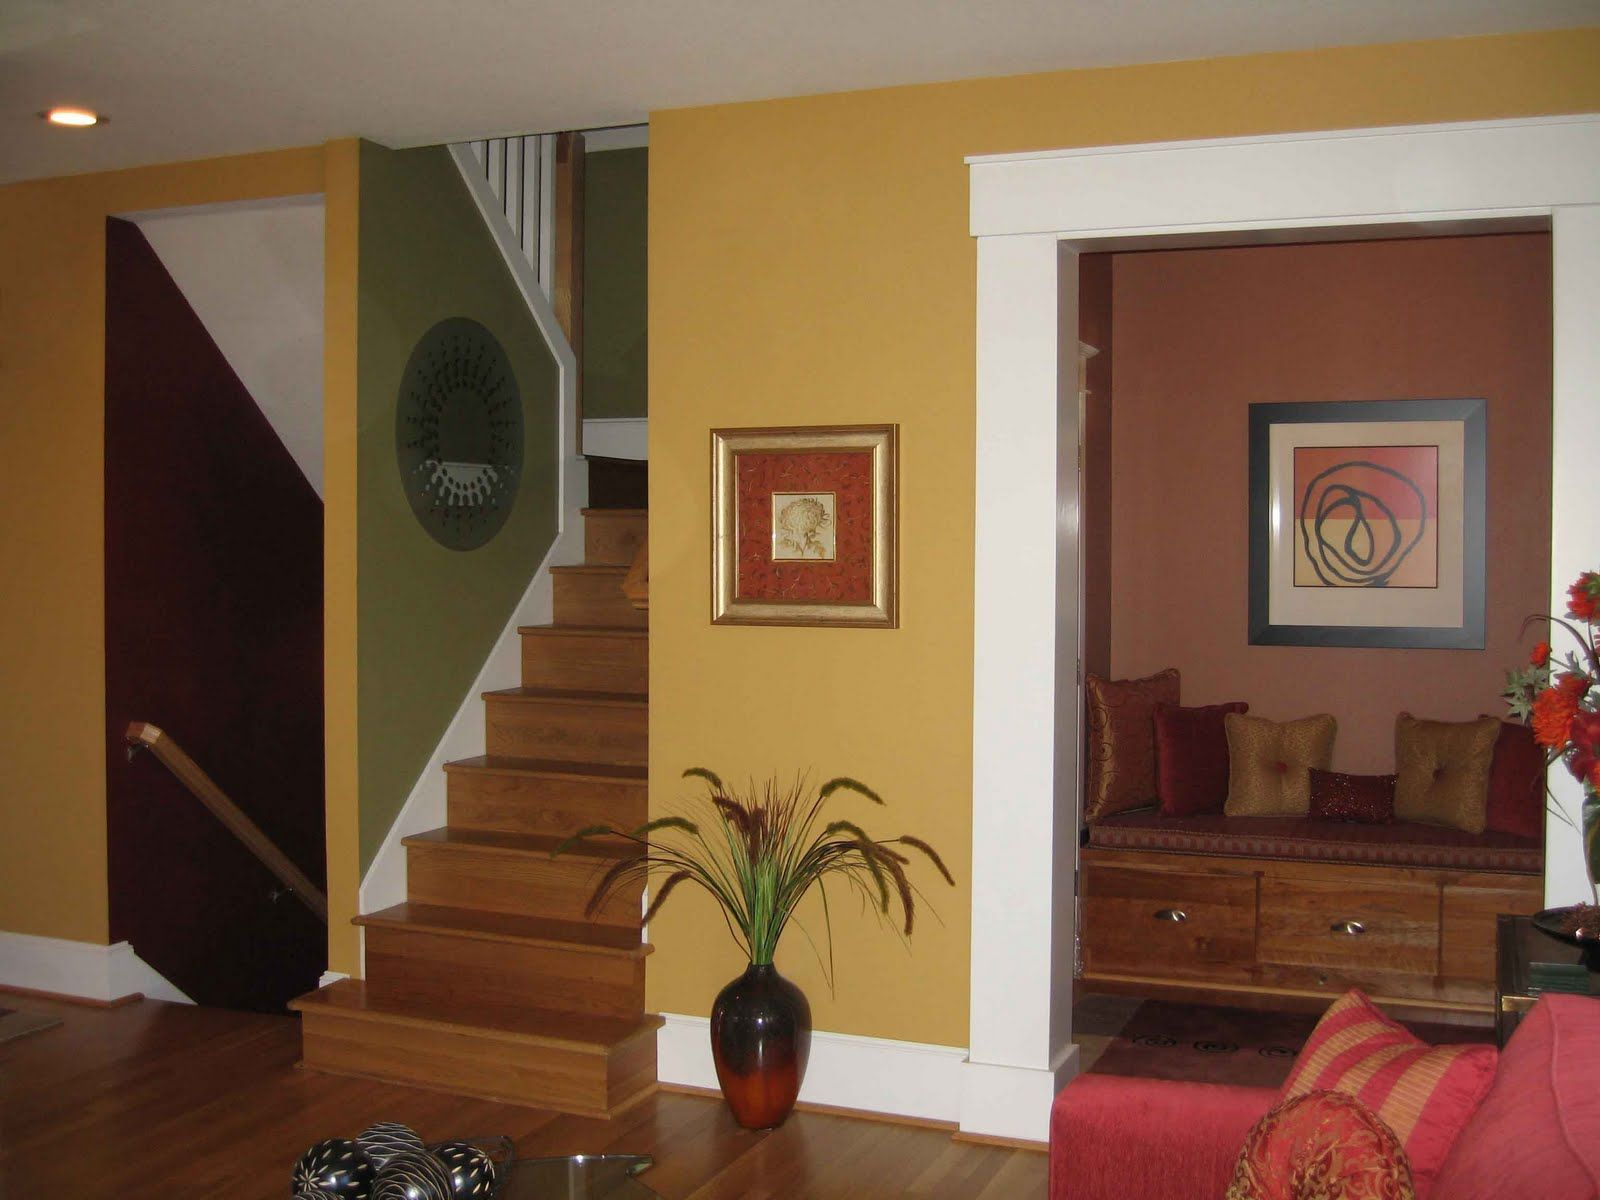 Popular Indoor Paint Colors popular house interior colors | interior spaces: interior paint